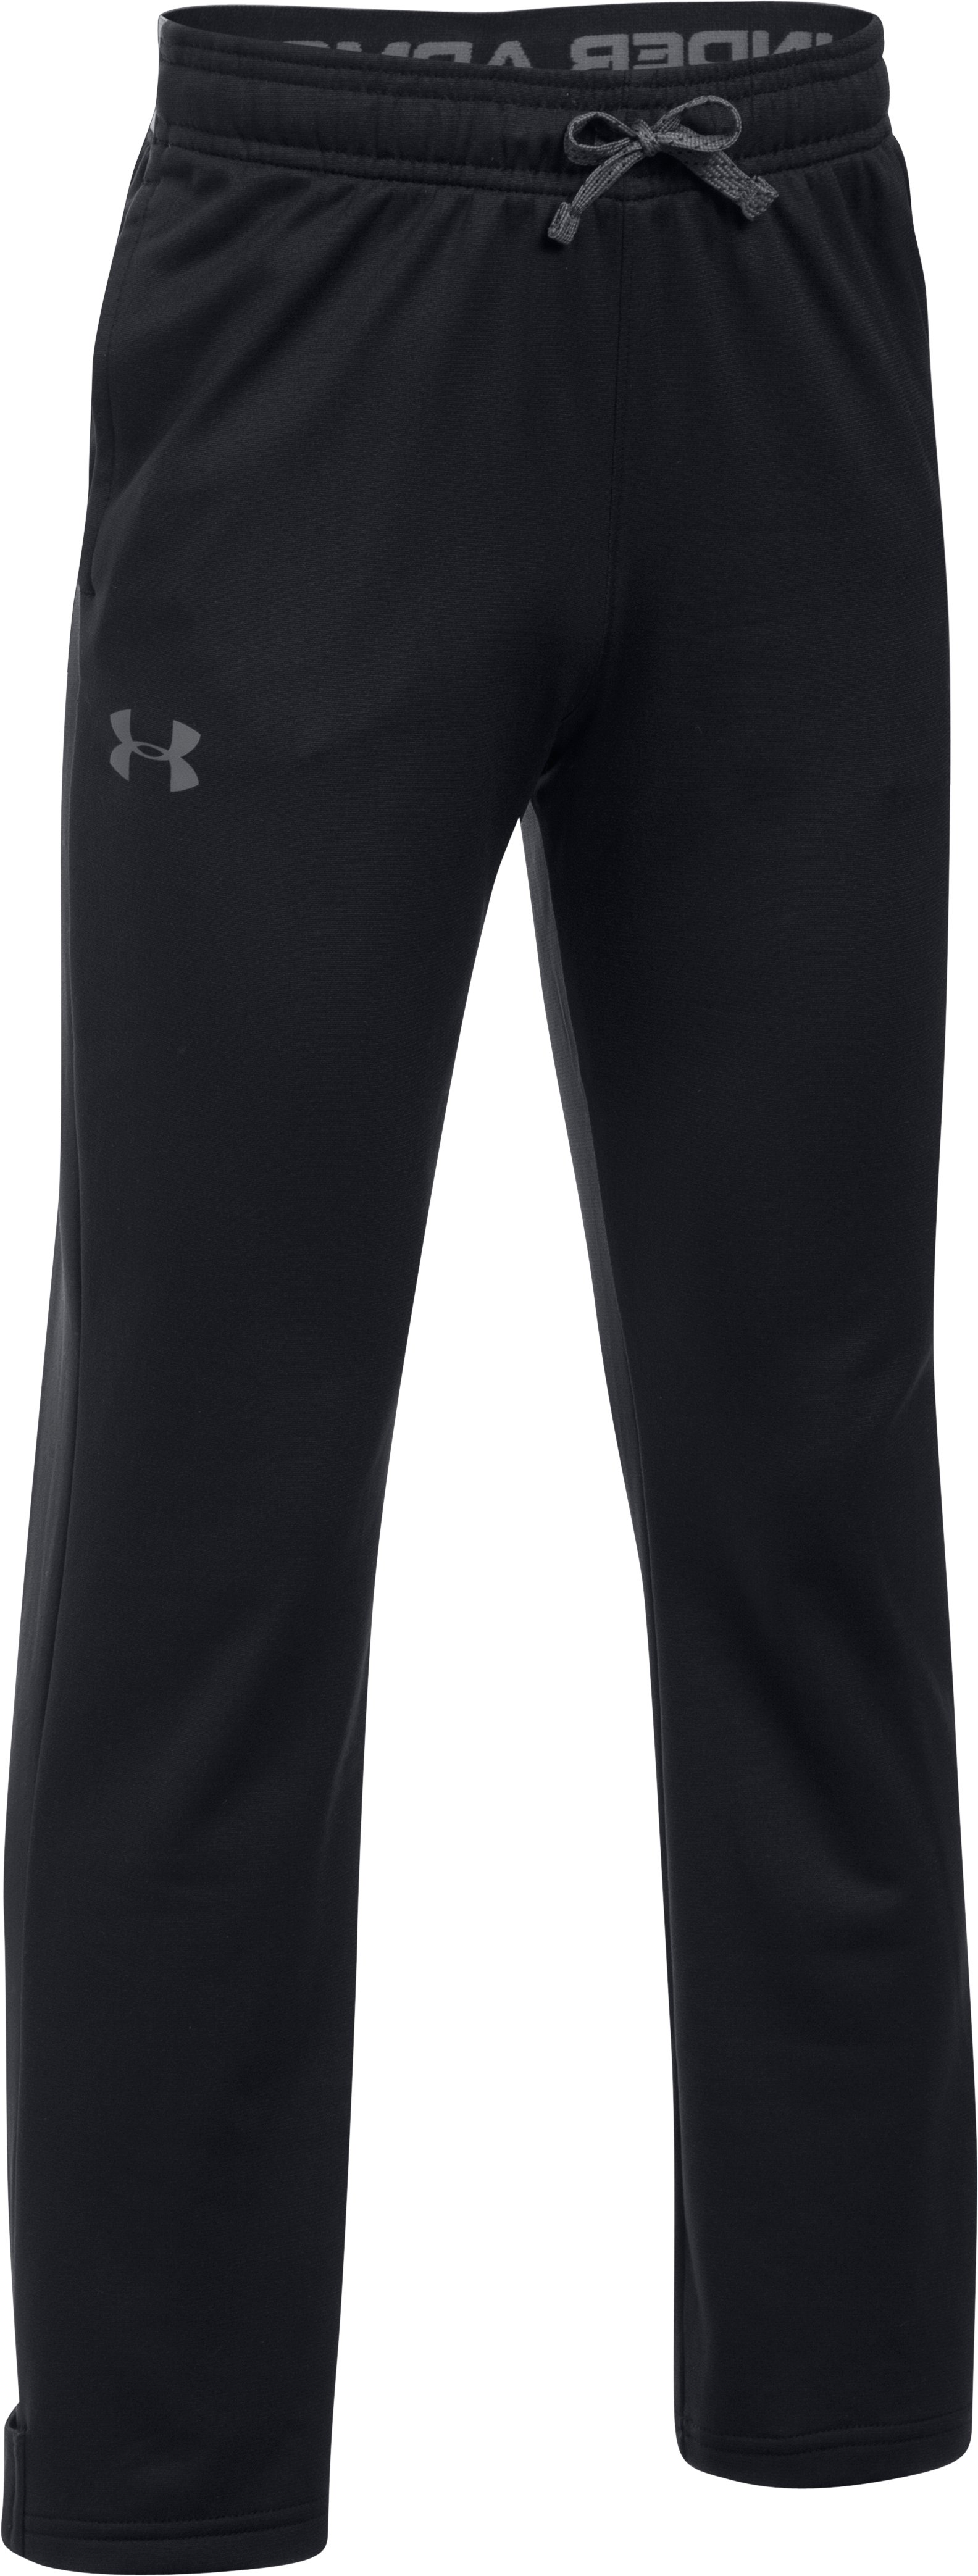 Boys' UA Brawler Slim Pants, Black